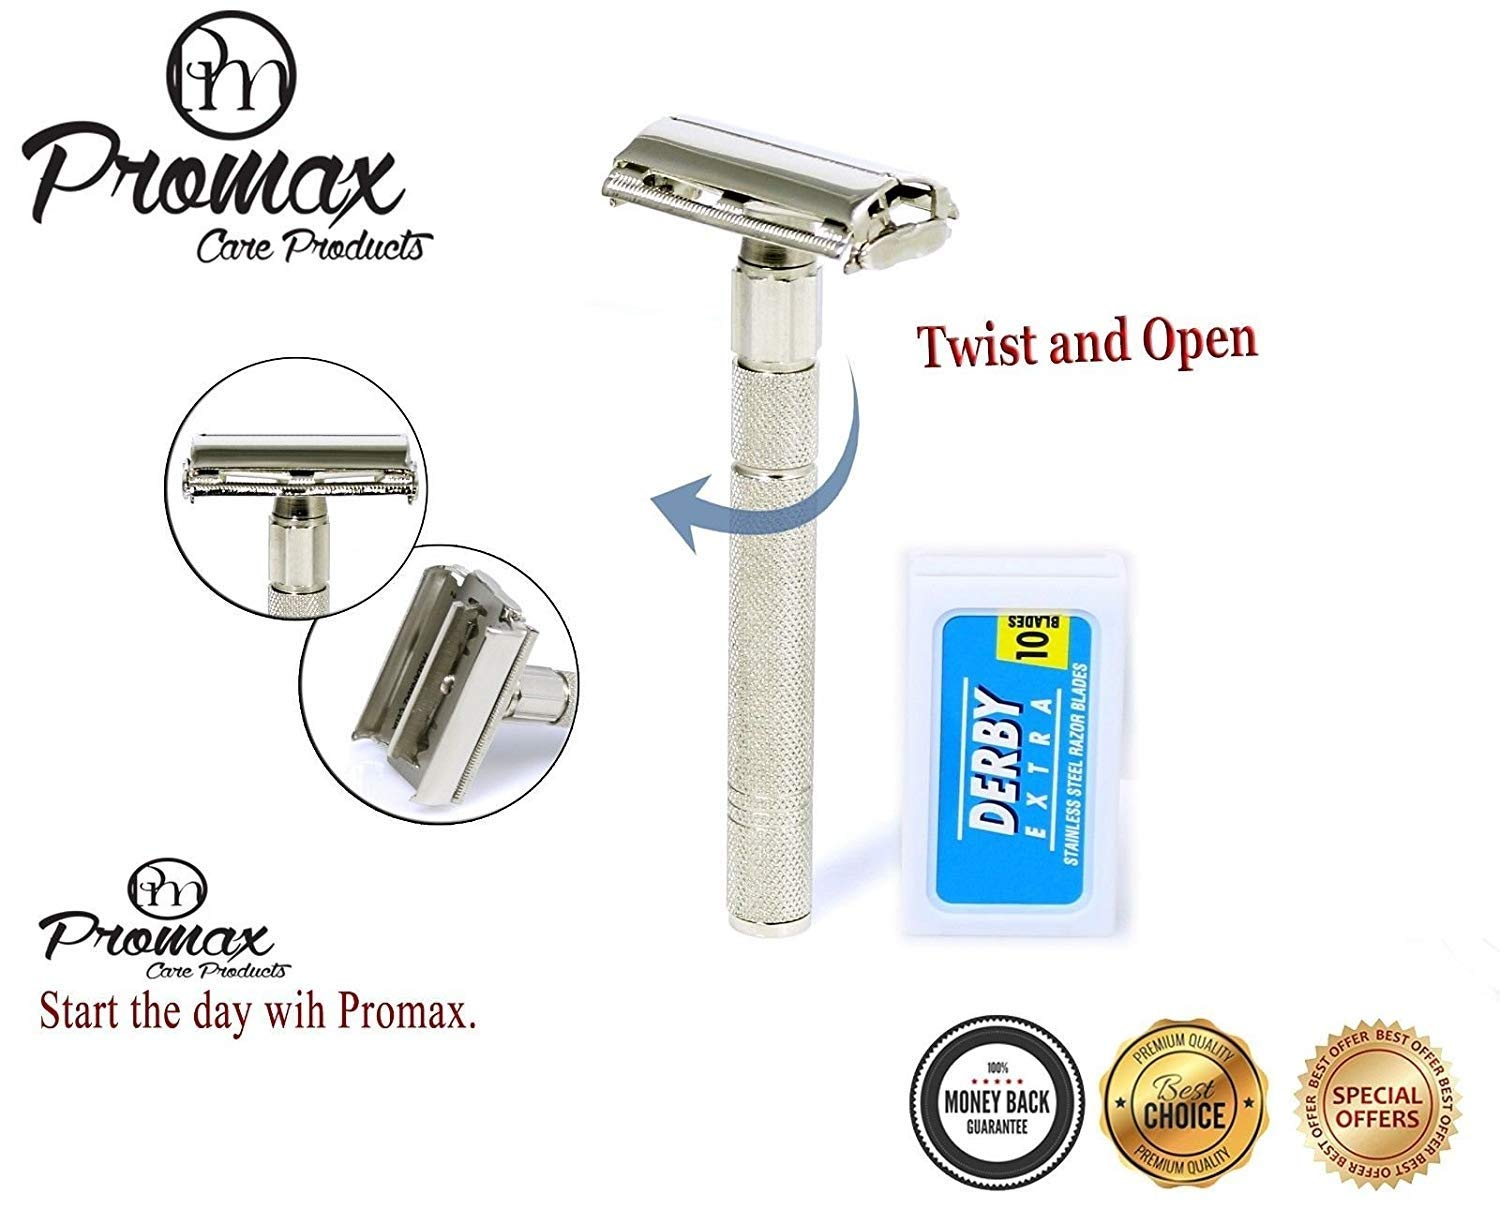 ProMax Care Double Edge Safety Razor ButterFly Style with 10 Derby Blades - Long Handled Chrome Finish 4 inch - Rust Free and Unbreakable-140-10001BF ProMax Care Products